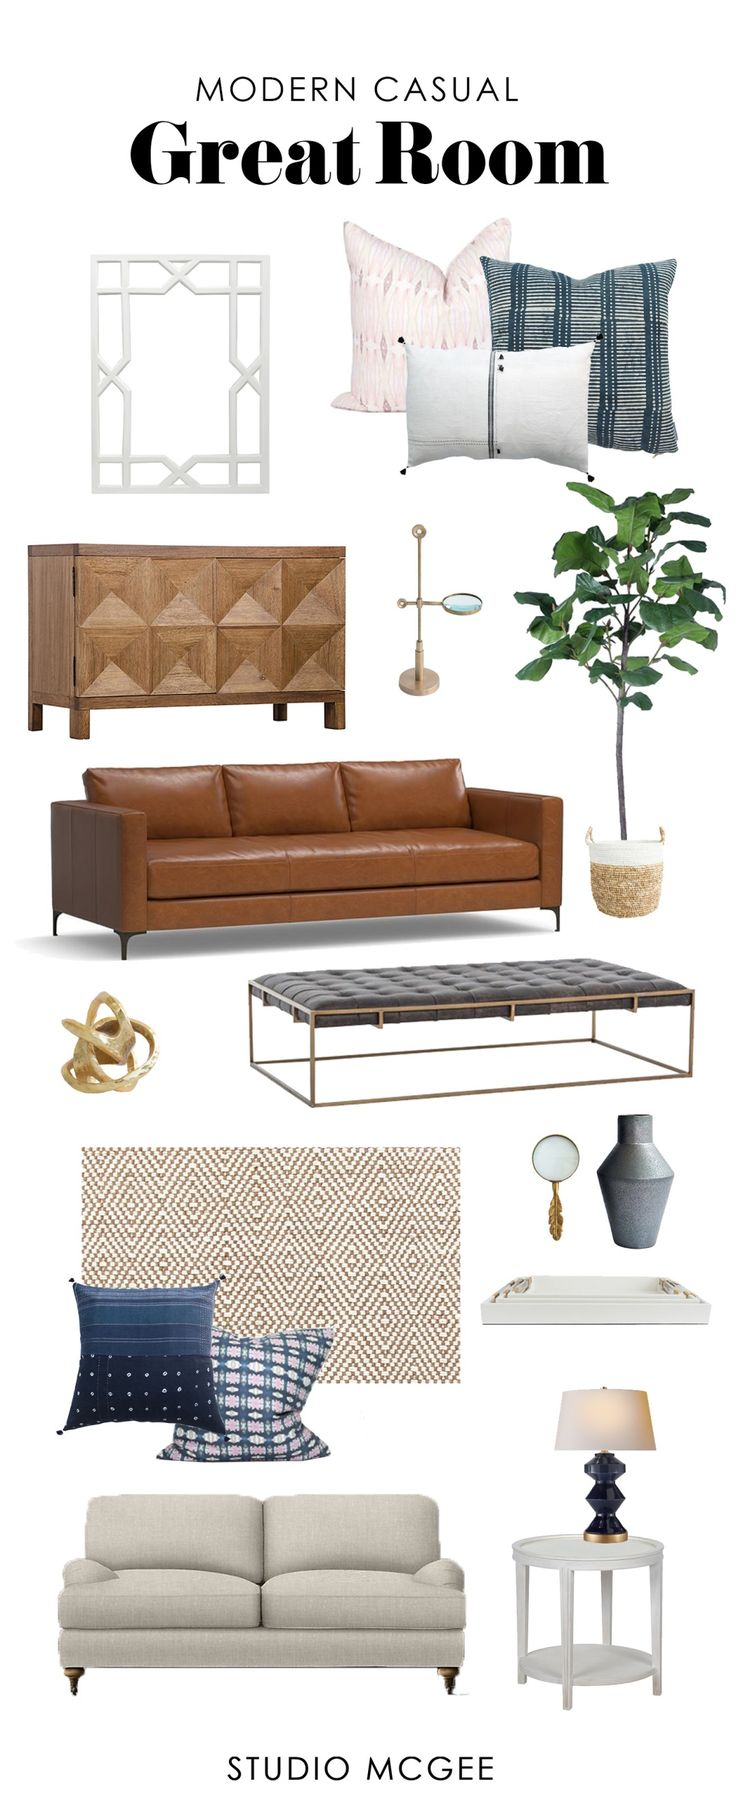 Get the Look: Modern Casual Living Room - Studio McGee